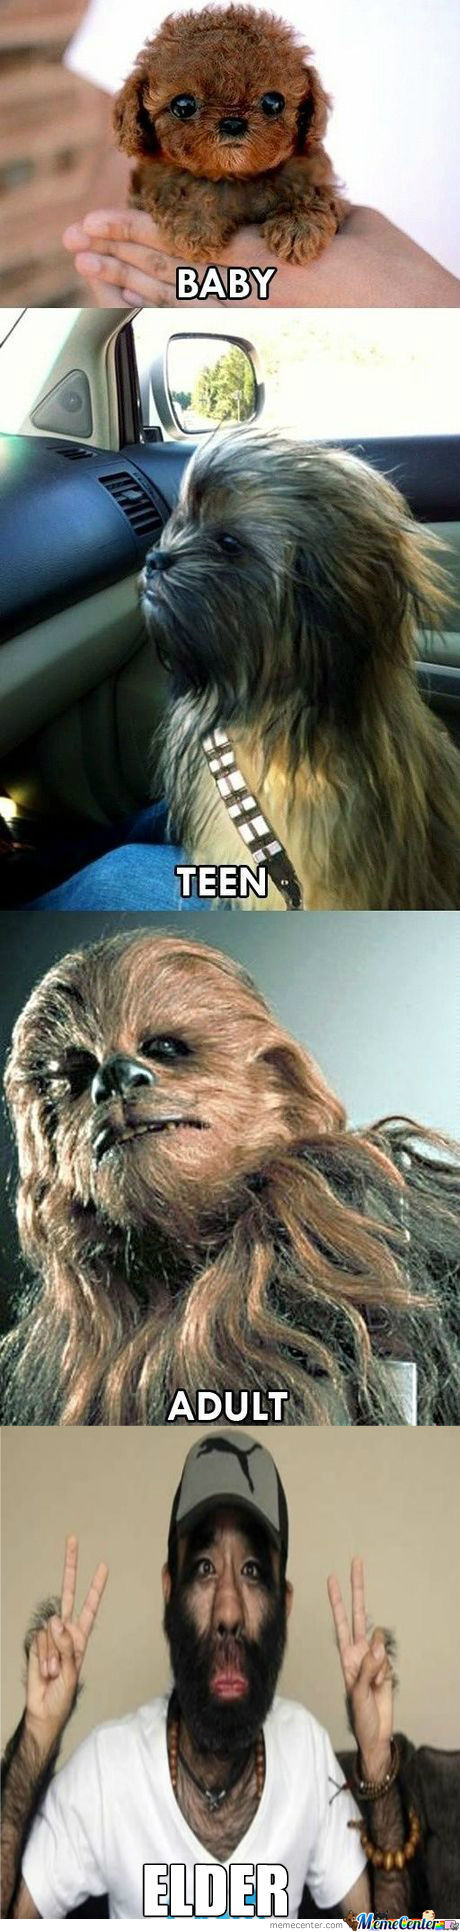 [RMX] The Life Of Chewbacca